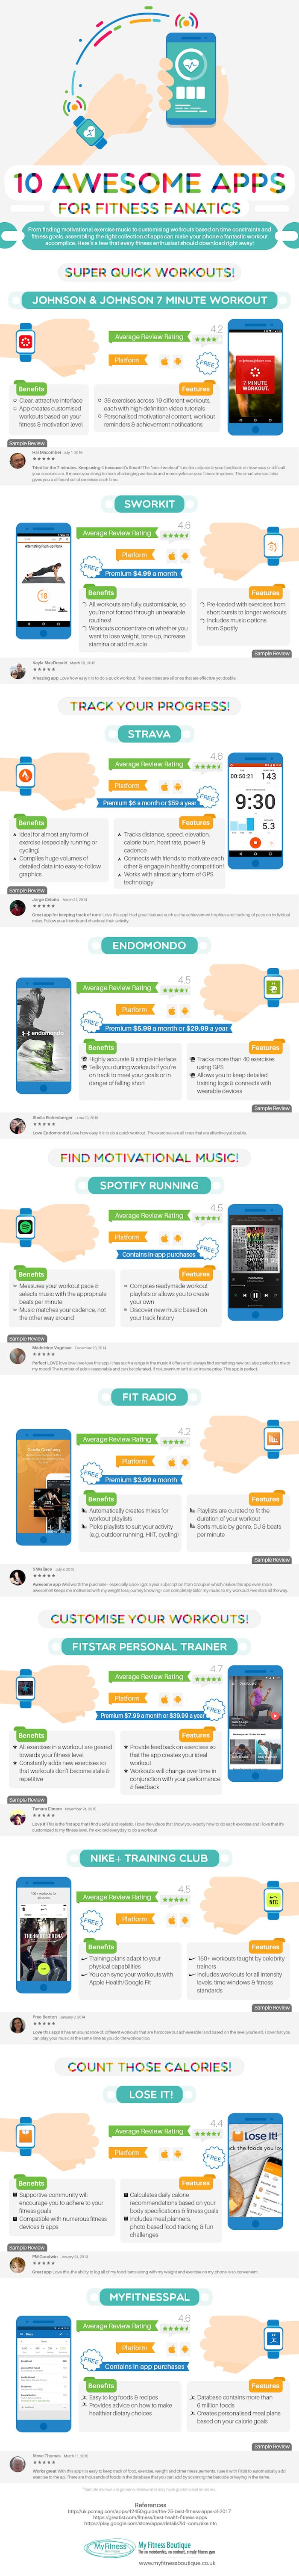 10 awesome apps for fitness fanatics - 10 awesome apps for fitness fanatics